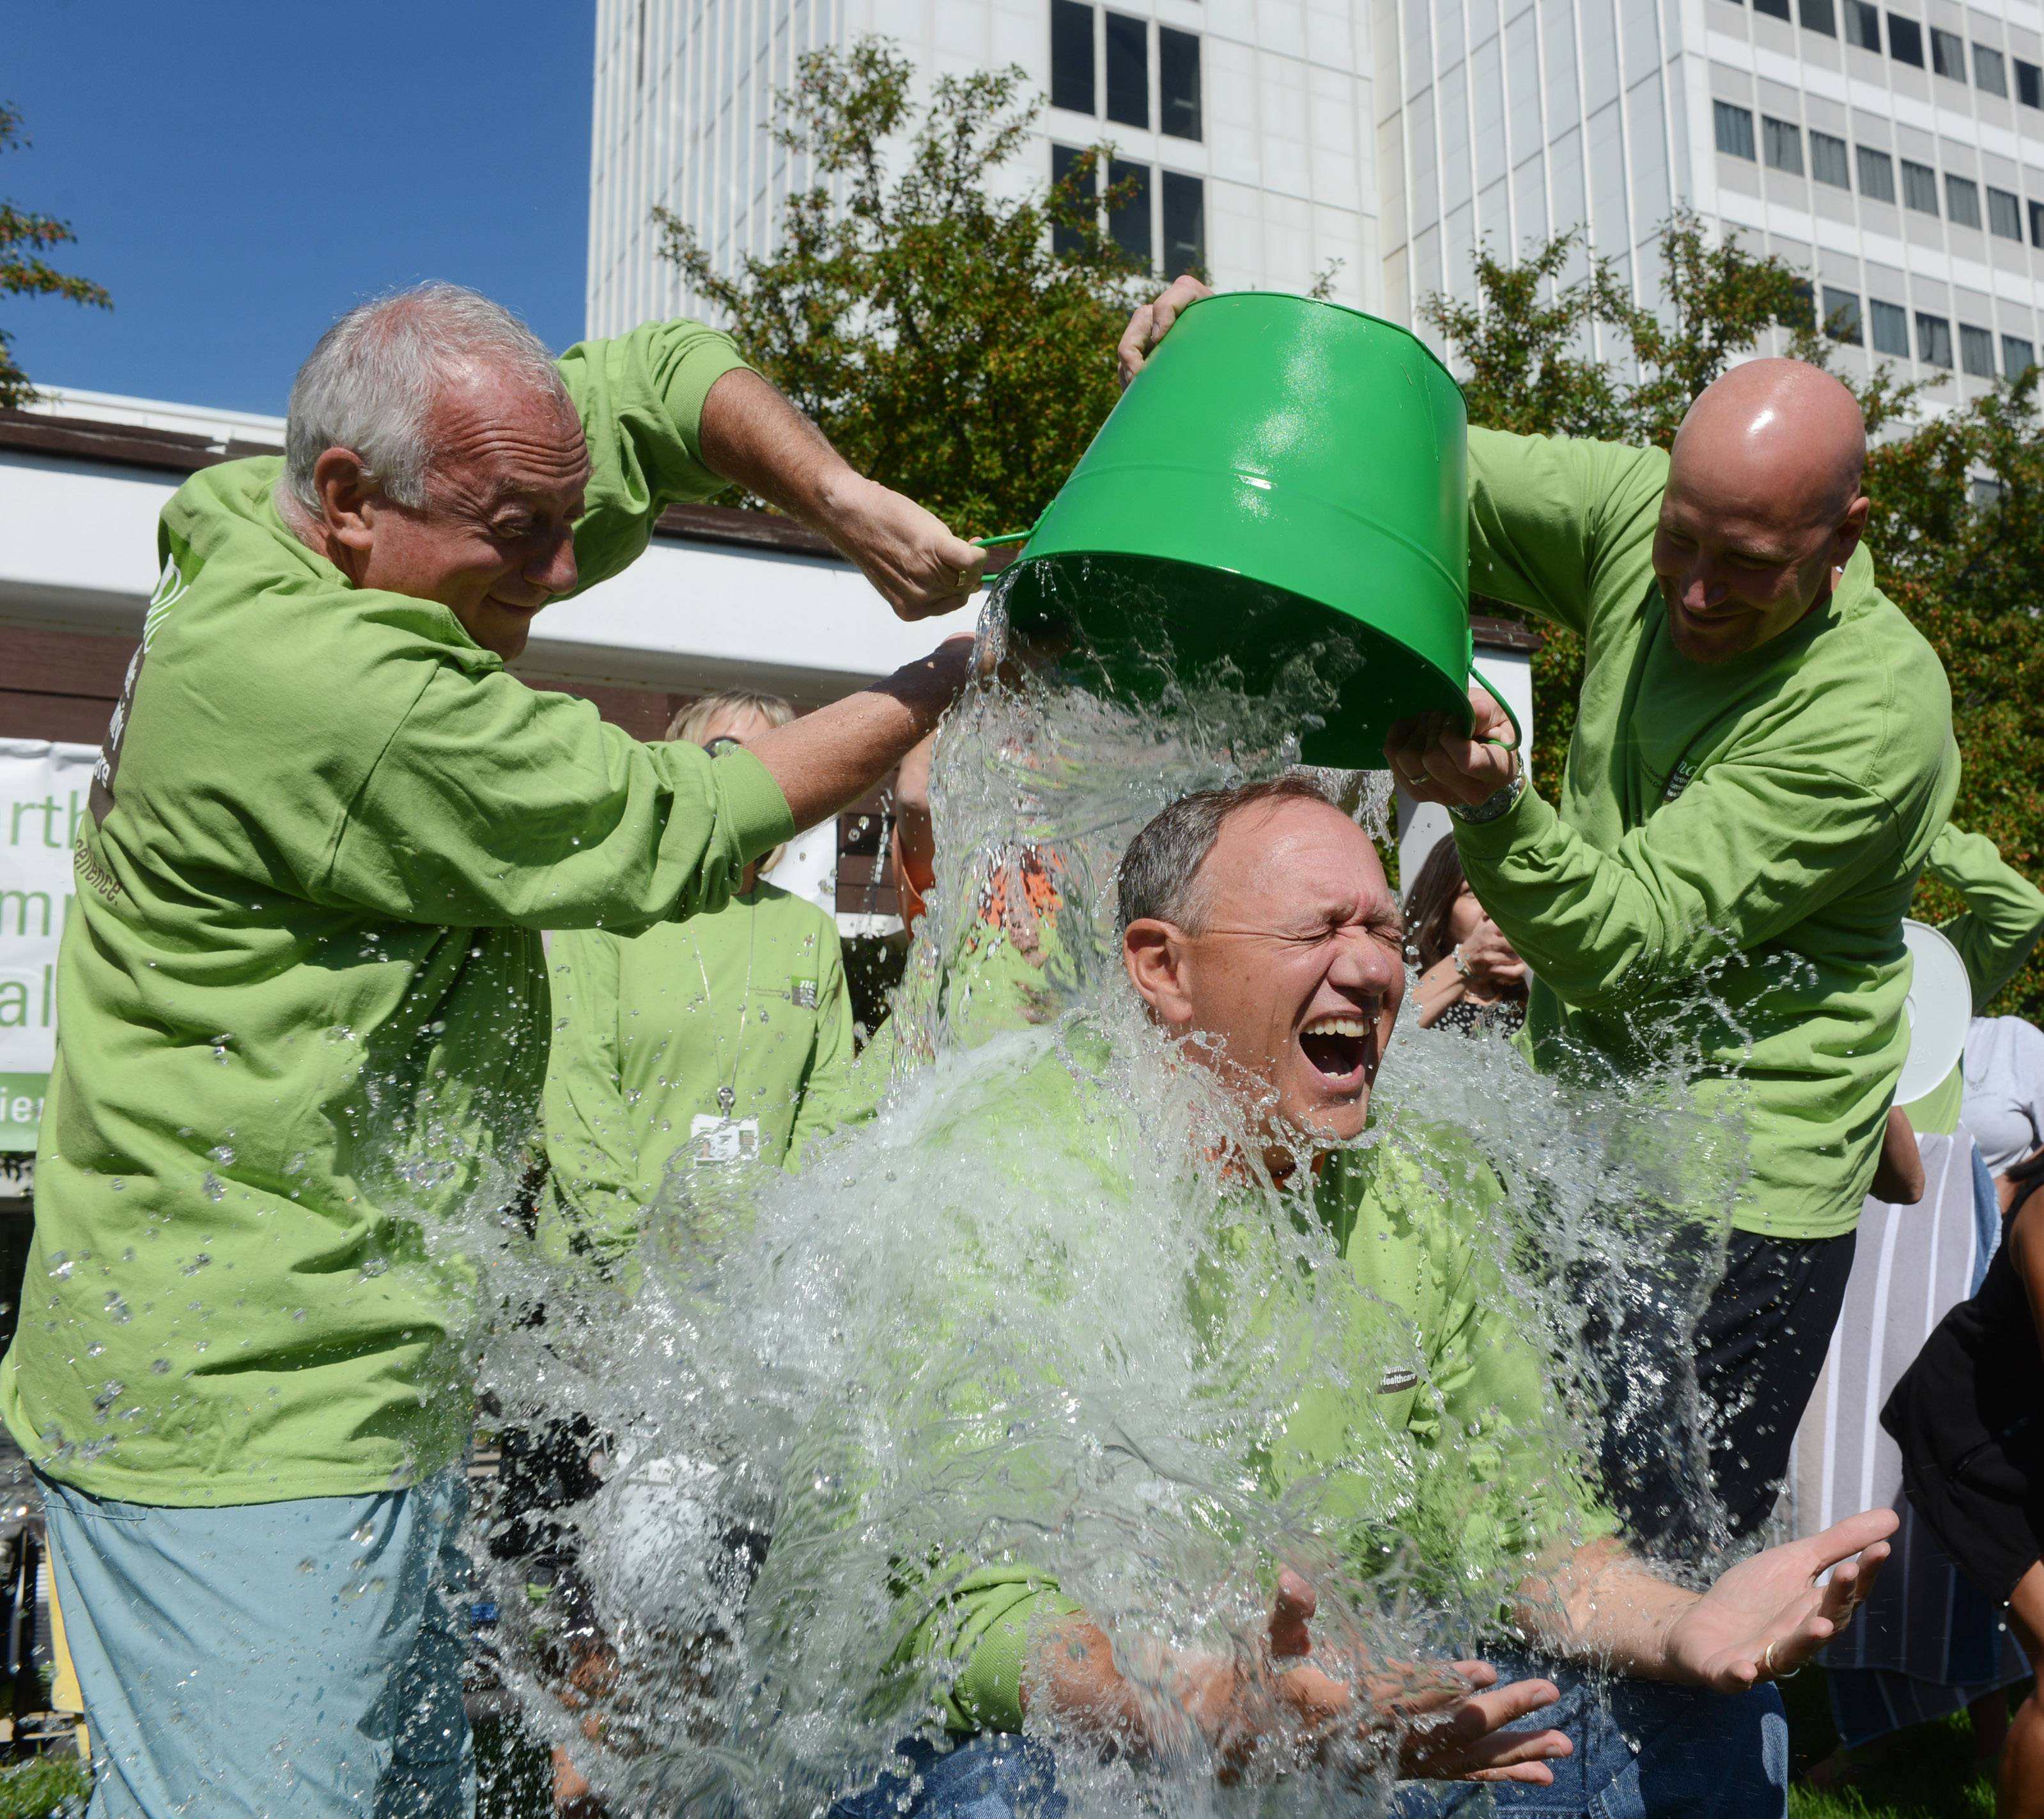 Northwest Community Hospital CEO Stephen Scogna takes the Ice Bucket Challenge in Arlington Heights last week. Dr. Alan Loren, left, and Chief Operations Officer Michael Hartke doused the CEO, who joined many hospital employees taking the challenge.